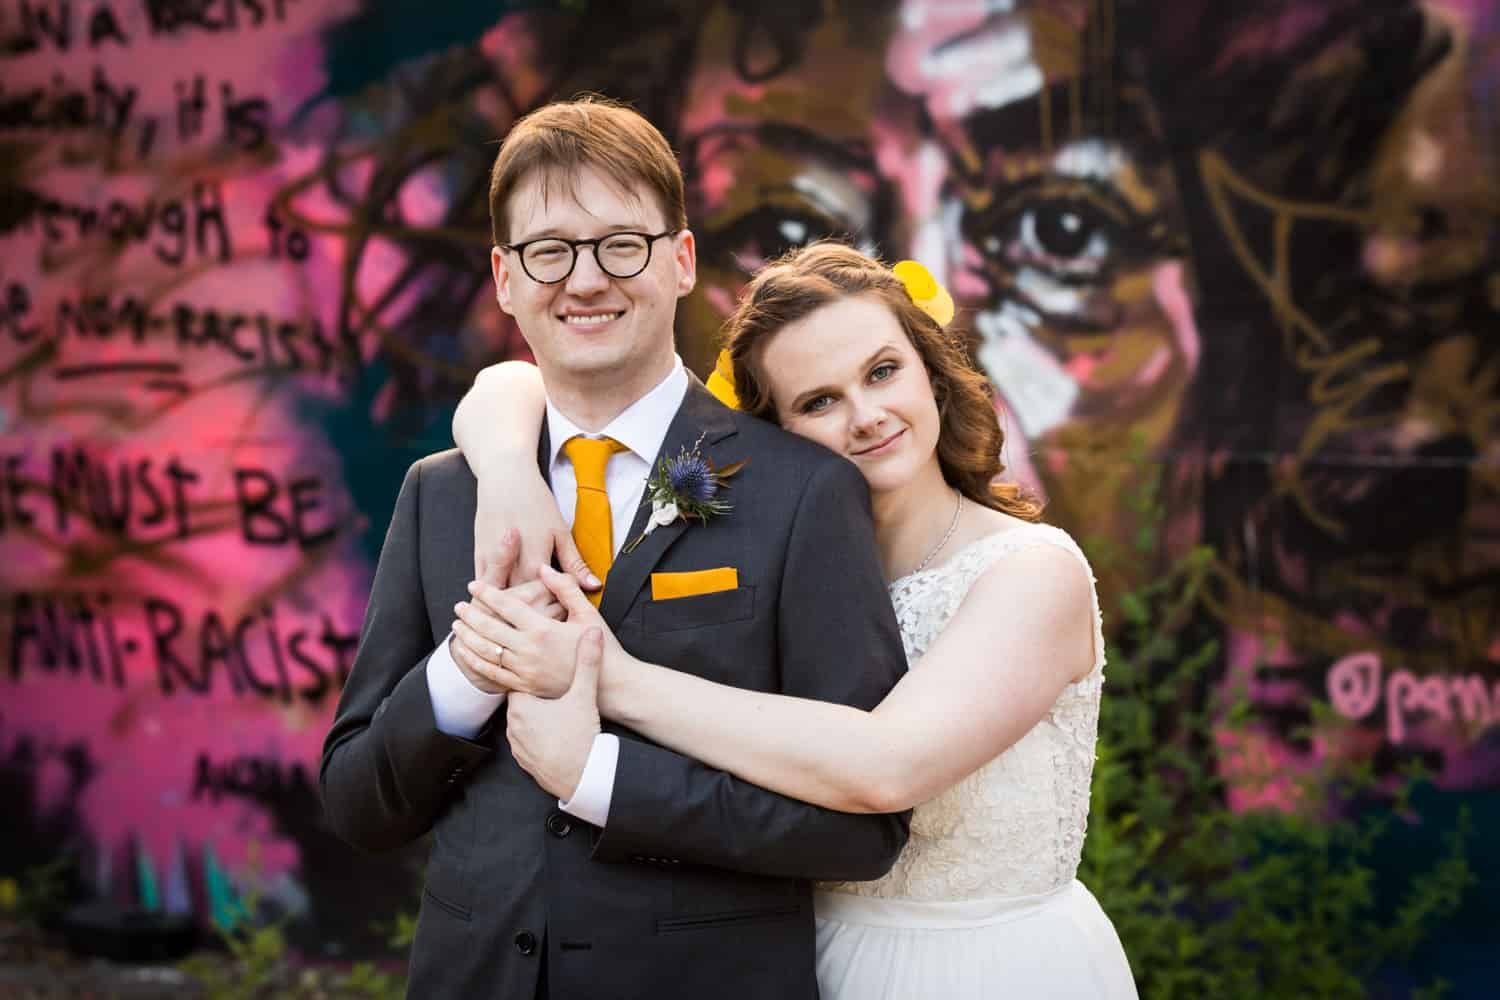 Bride hugging groom in front of graffiti for an article on Covid-19 wedding planning